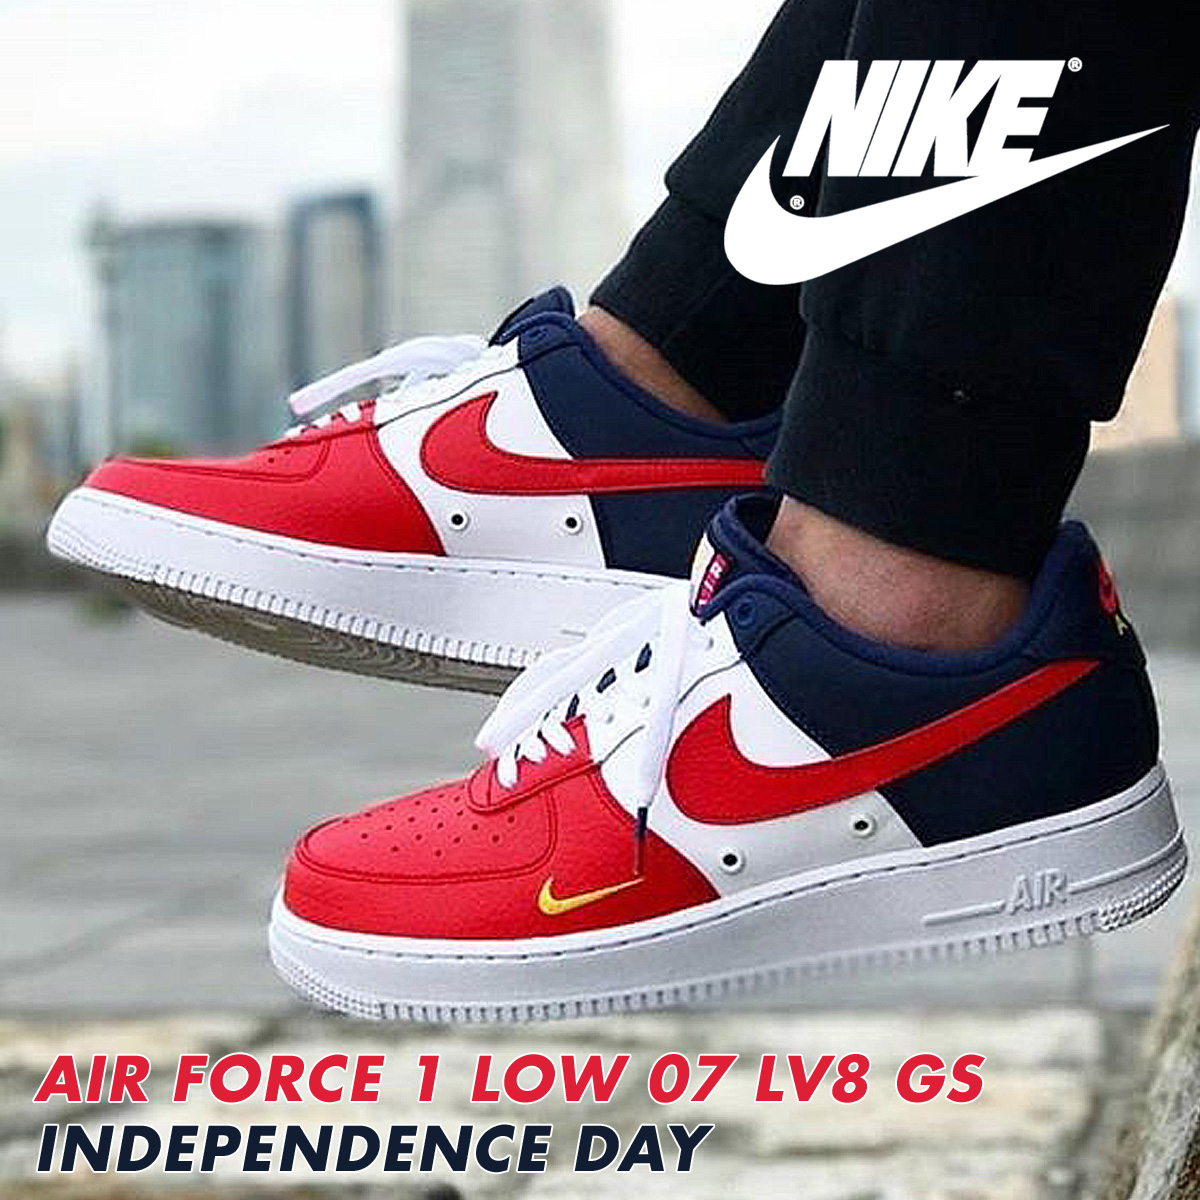 sports shoes 0a7d3 96b1d NIKE Nike air force 1 07 LV8 Lady's sneakers AIR FORCE 1 LOW INDEPENDENCE  DAY 820,438-603 shoes red [load planned Shinnyu load in reservation product  ...